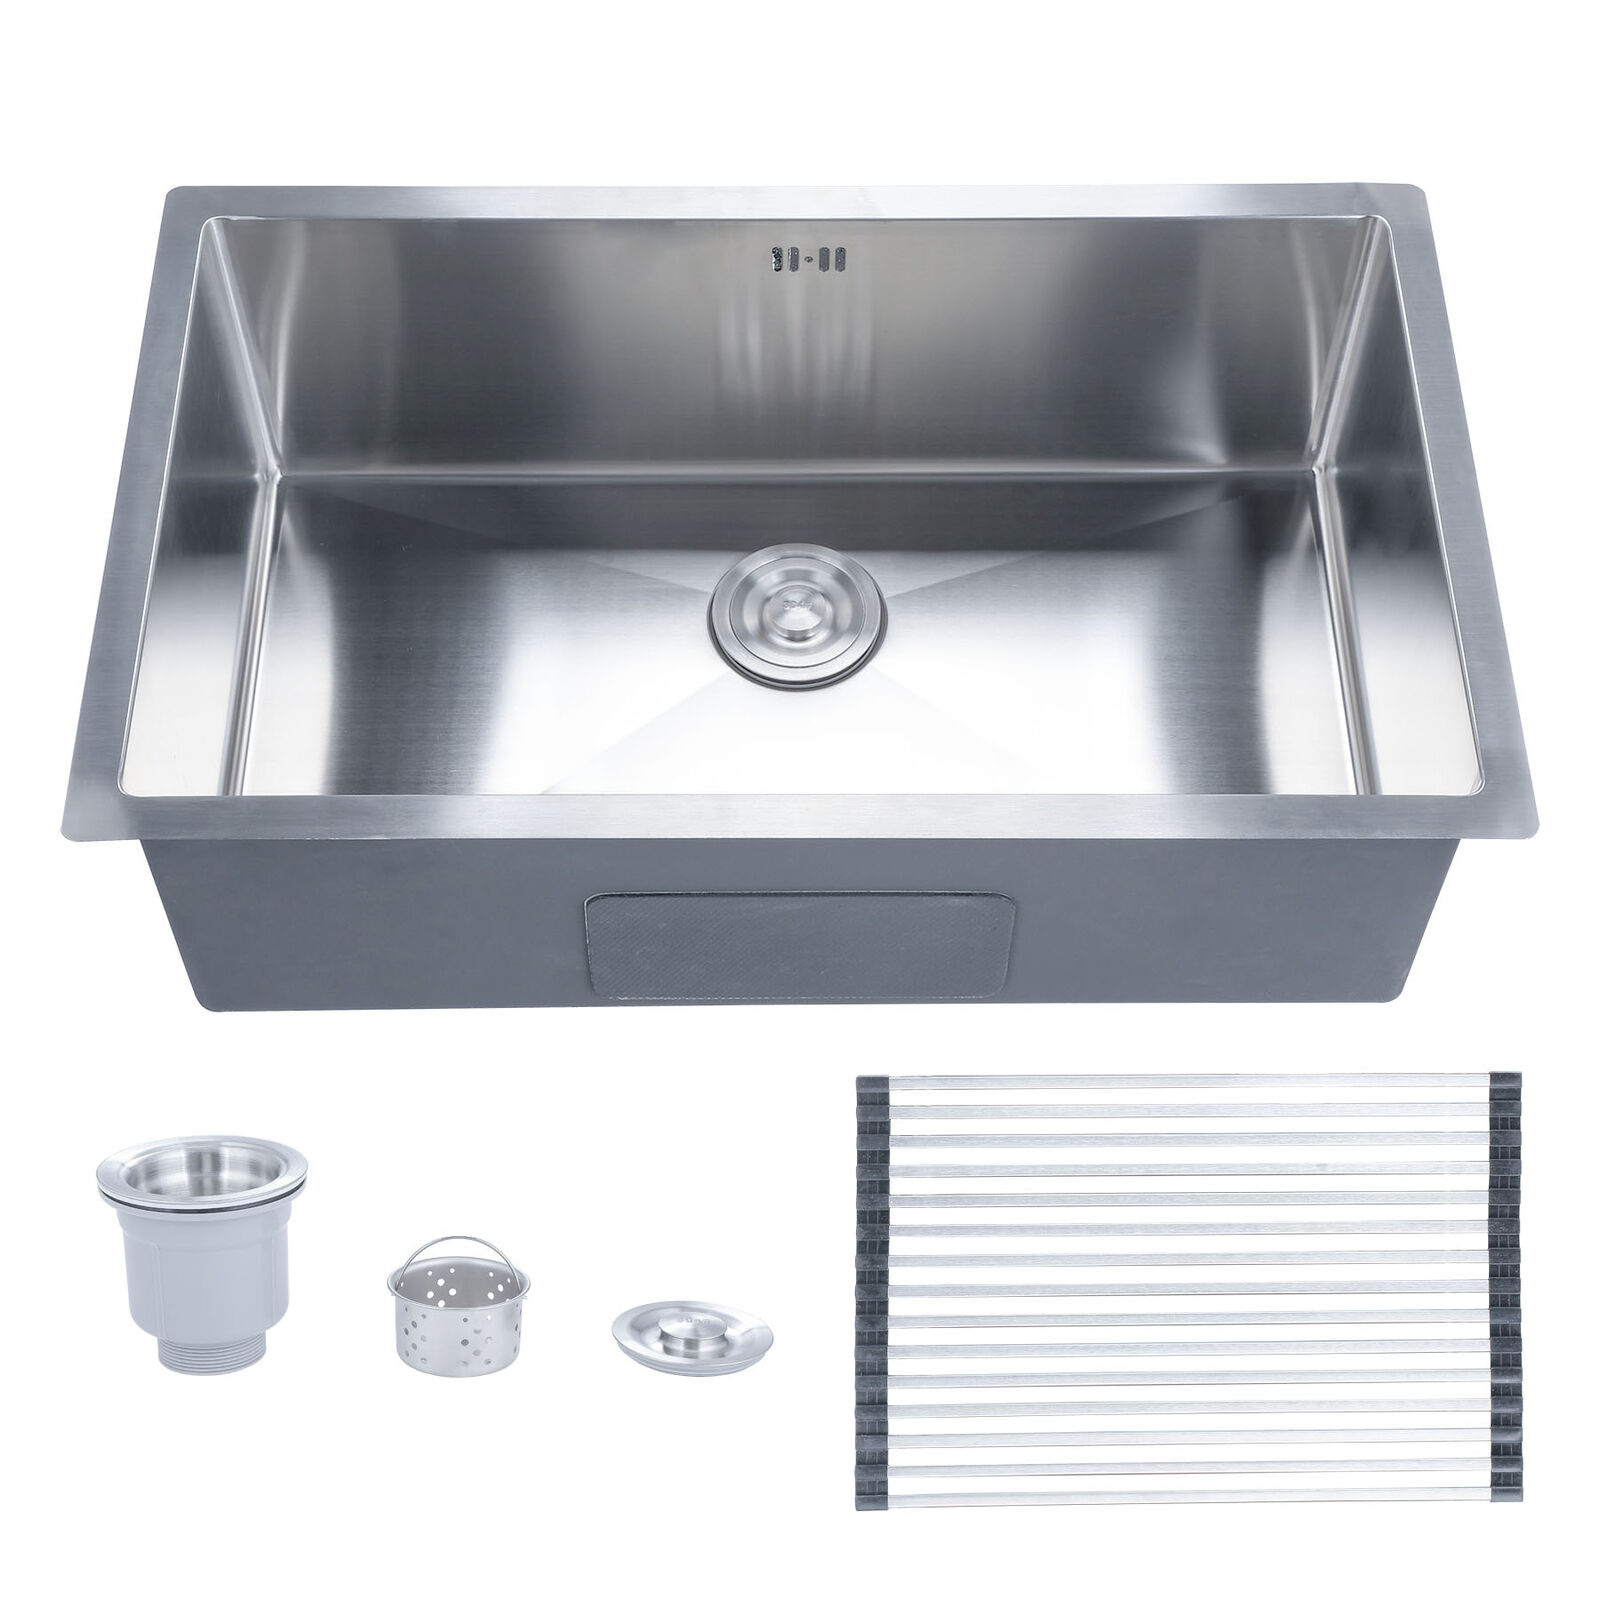 Undermount Stainless Steel Kitchen Sink Single Bowl 28\